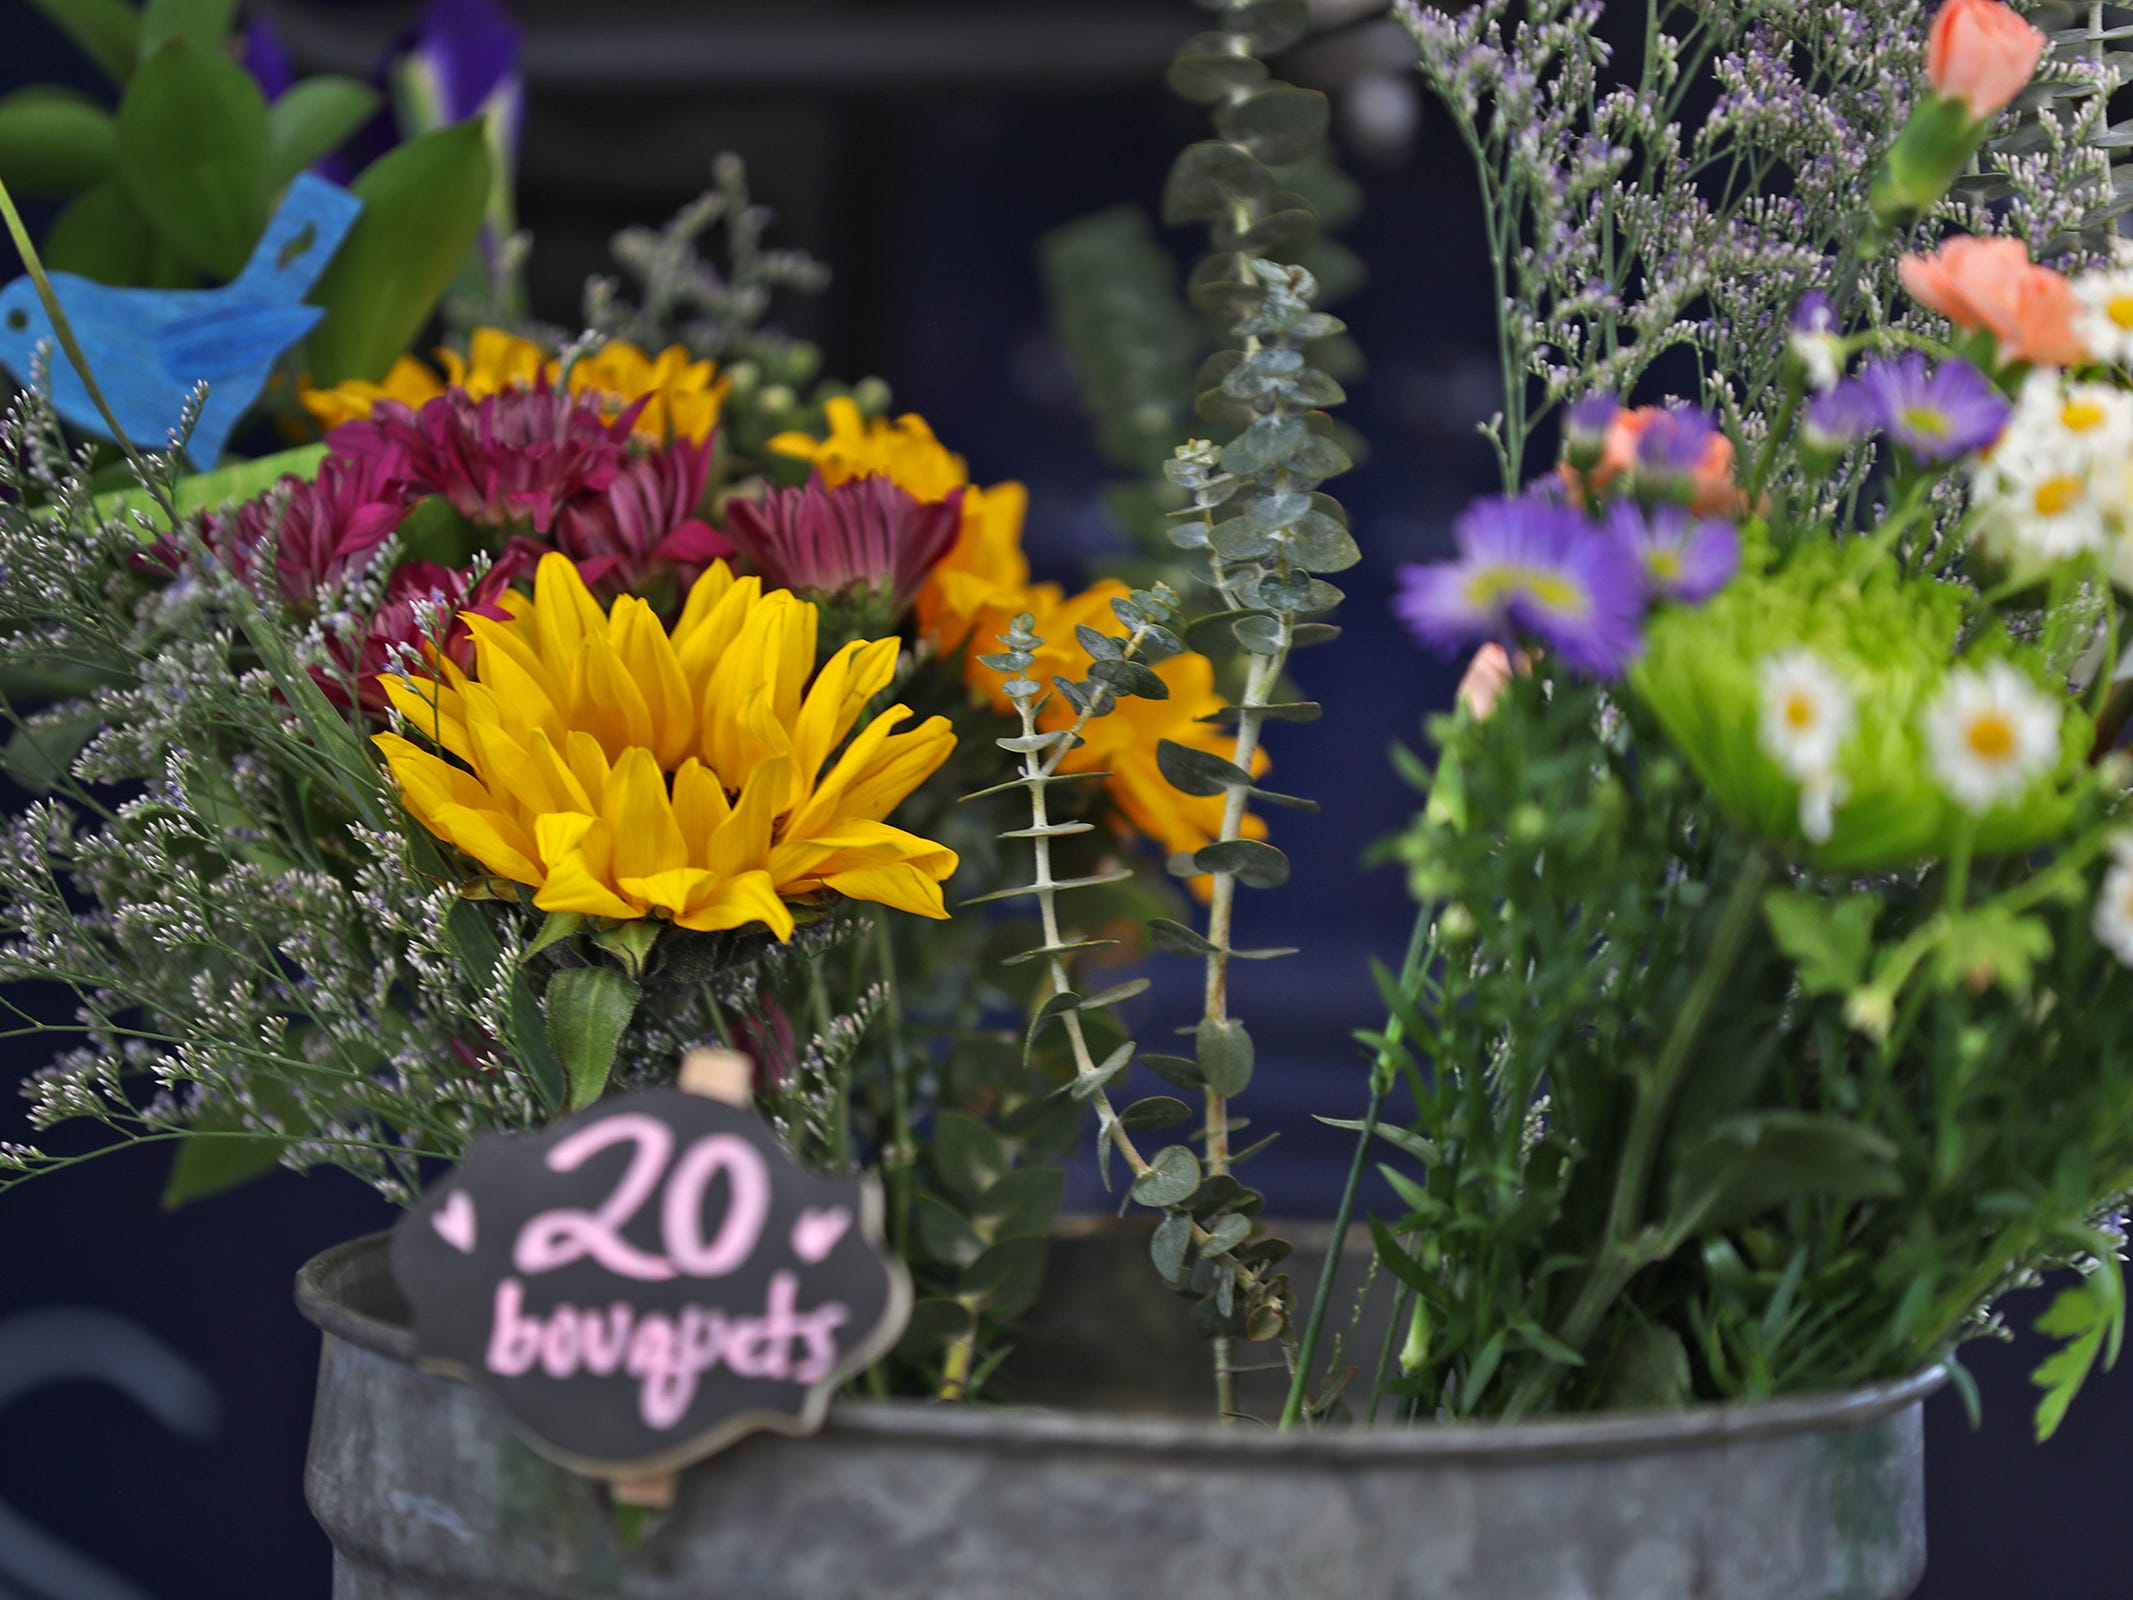 Flowers and greenery are for sale at the Stemsflowertruck.com display at the Indiana Flower + Patio Show, at the Indiana State Fairgrounds, Sunday, March 10, 2019.